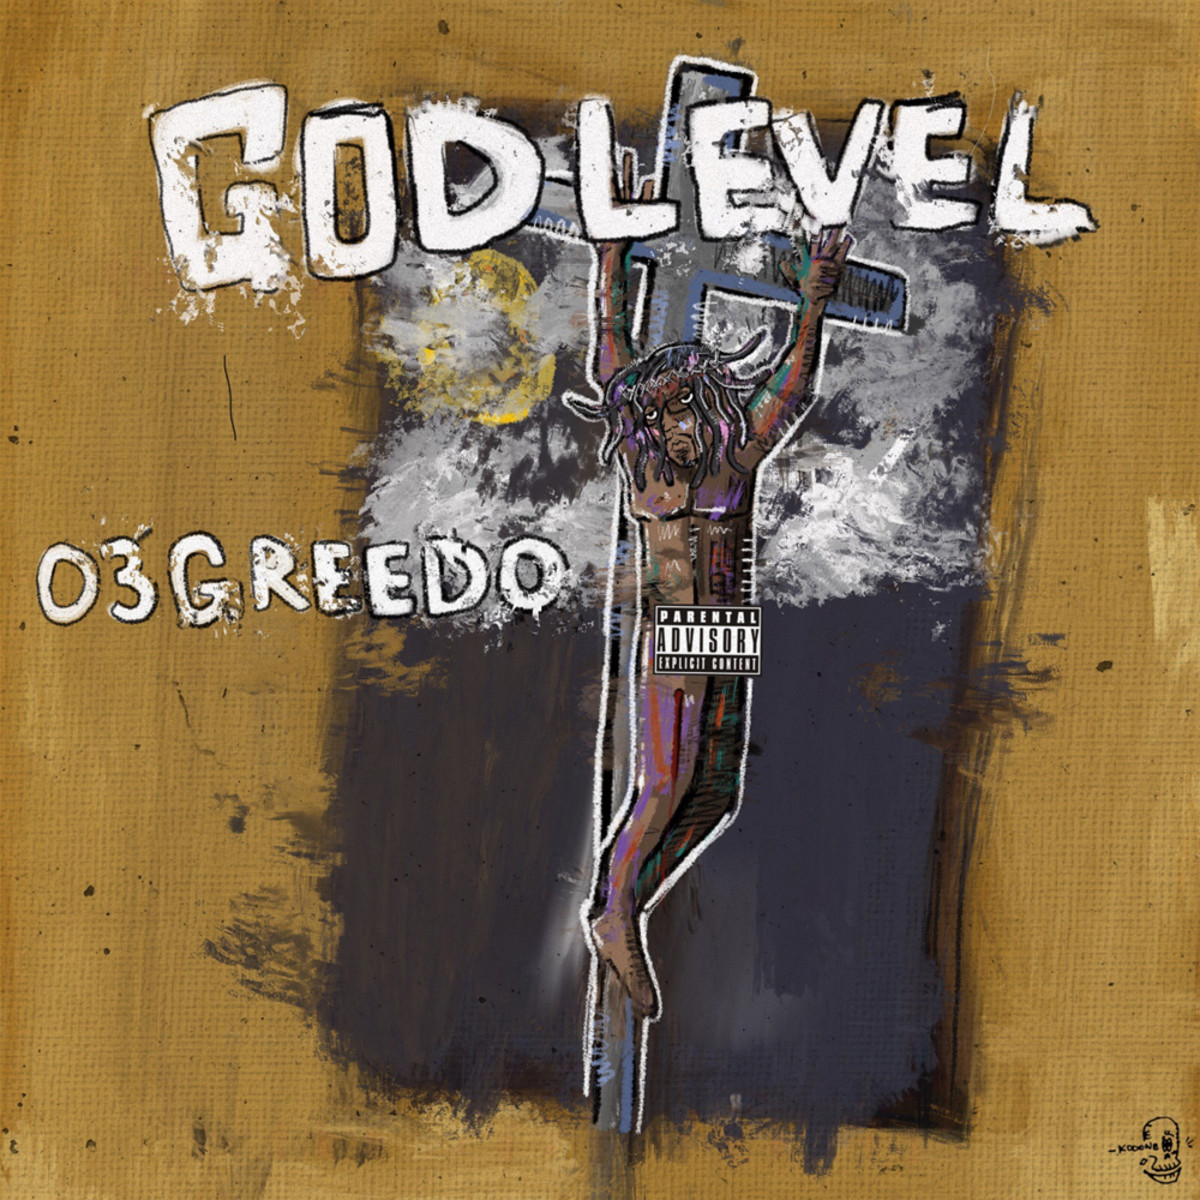 03-greedo-god-level-album-art